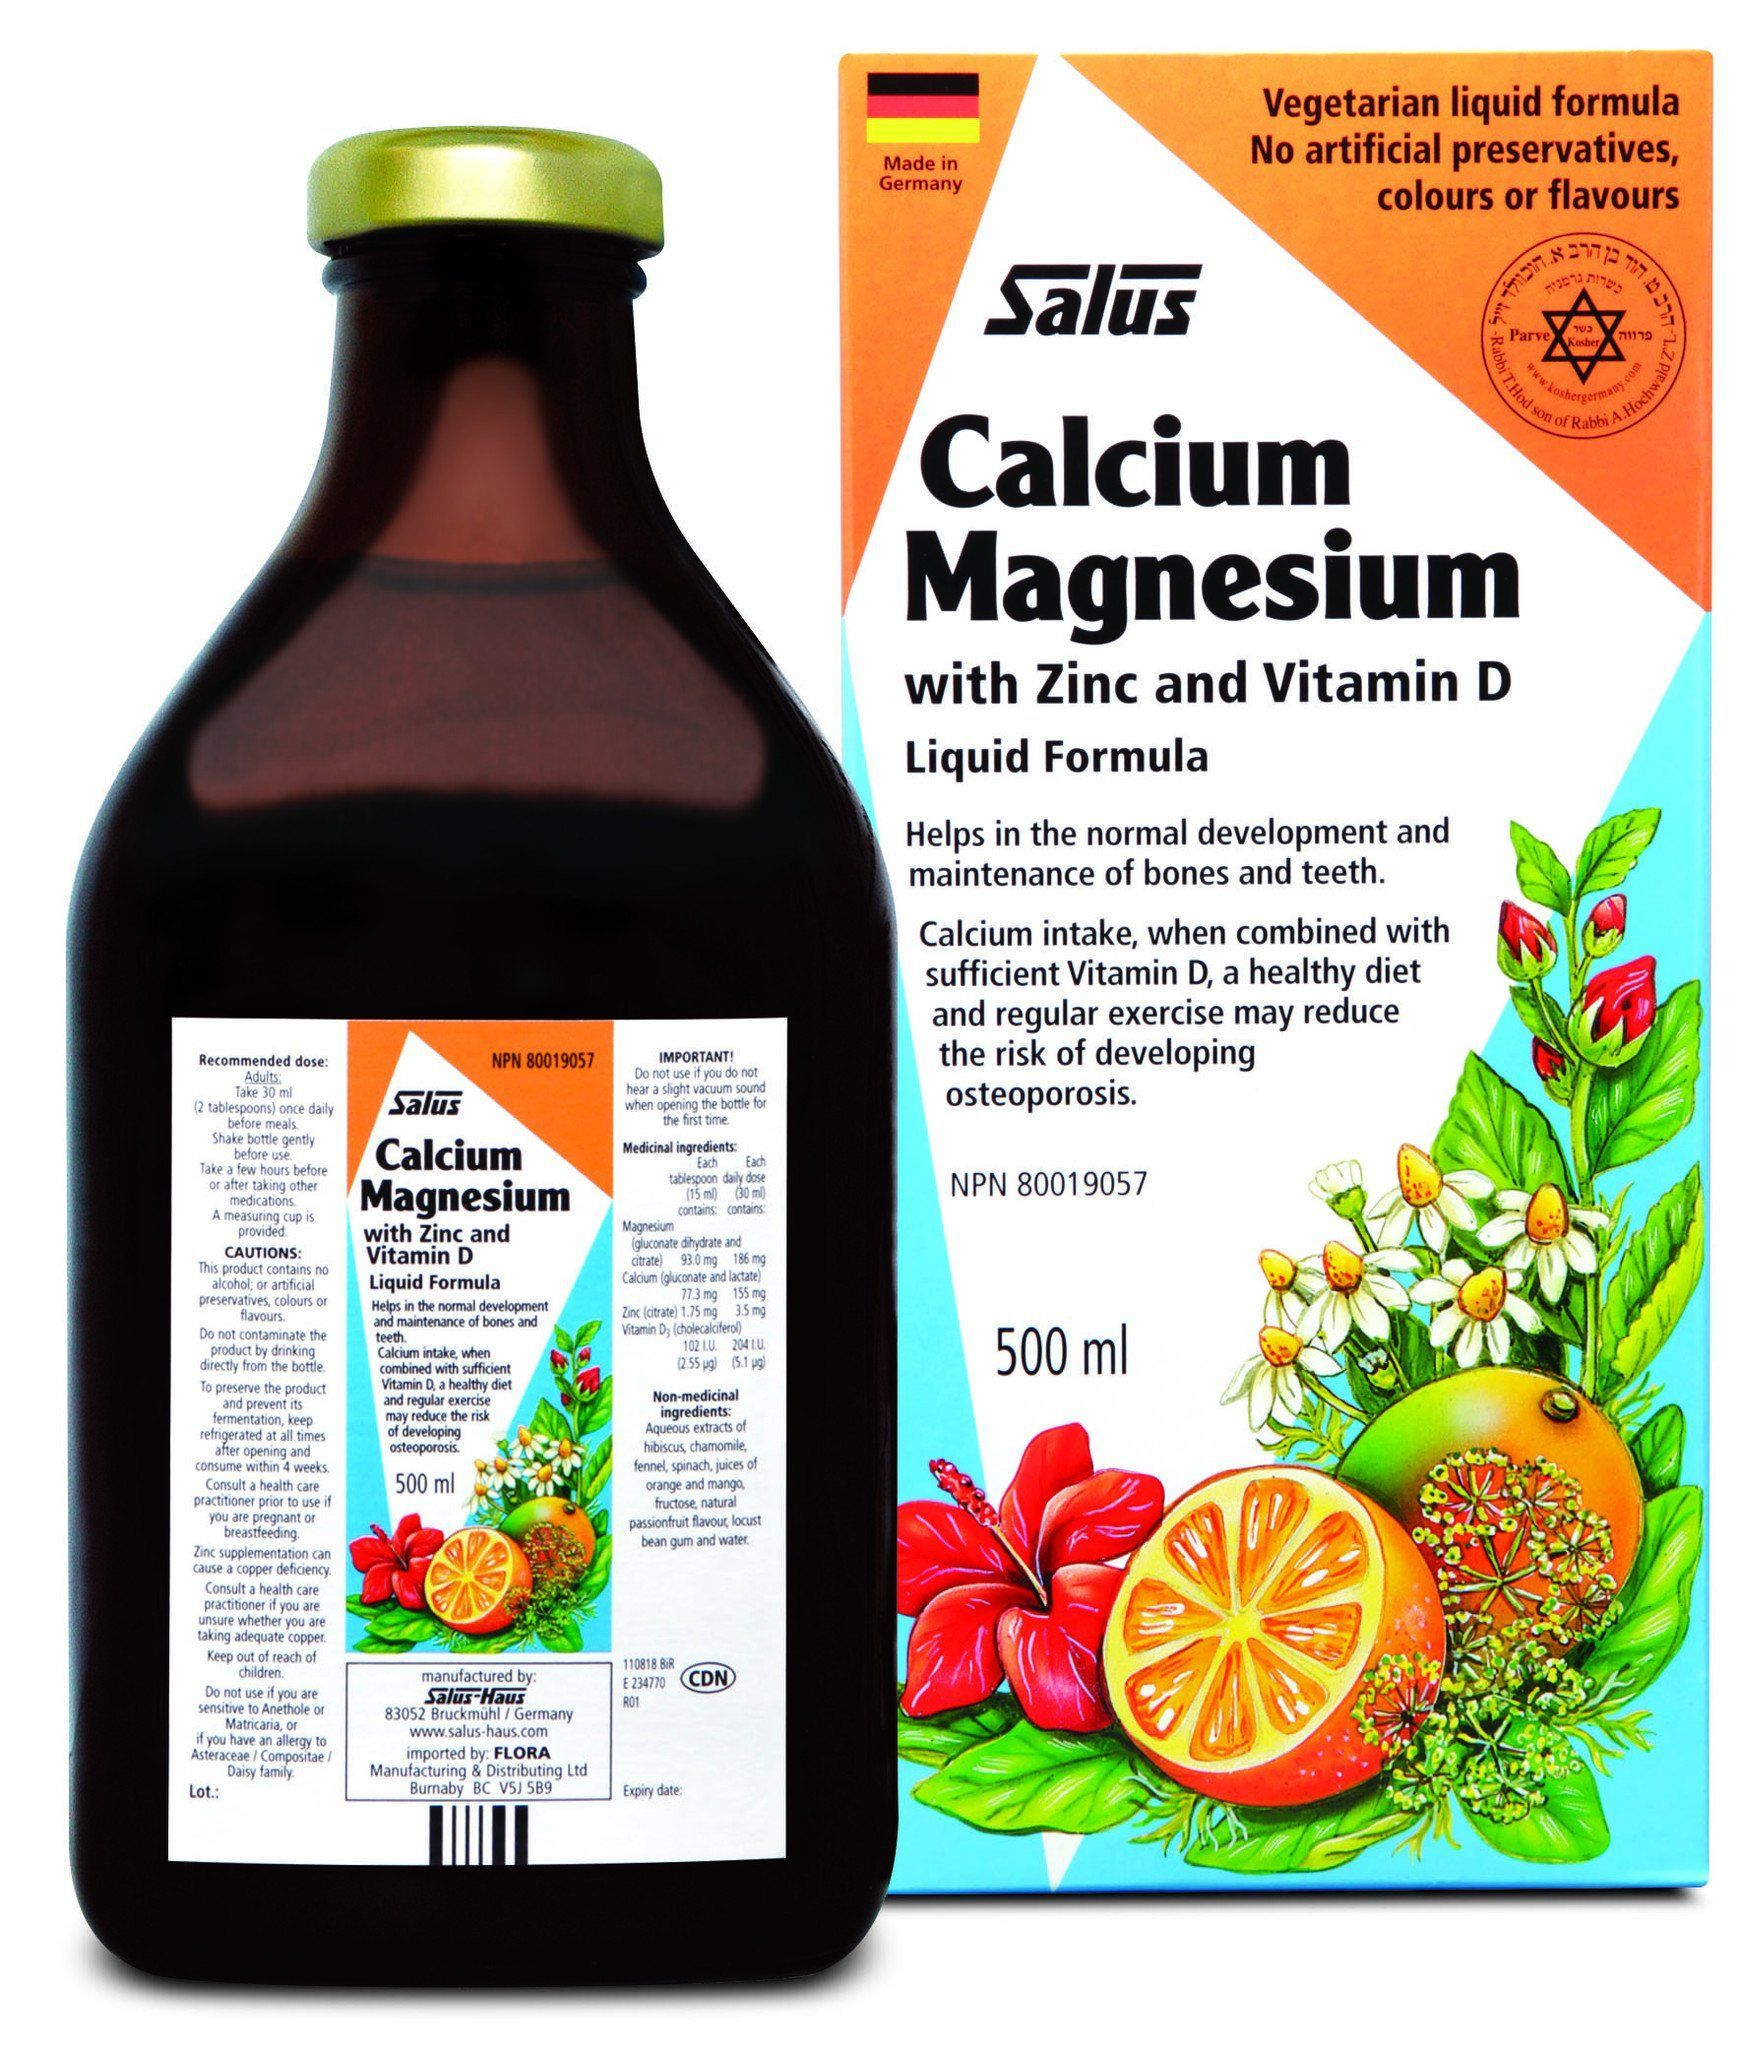 Supplements & Vitamins - Salus - Calcium Magnesium, 500ml